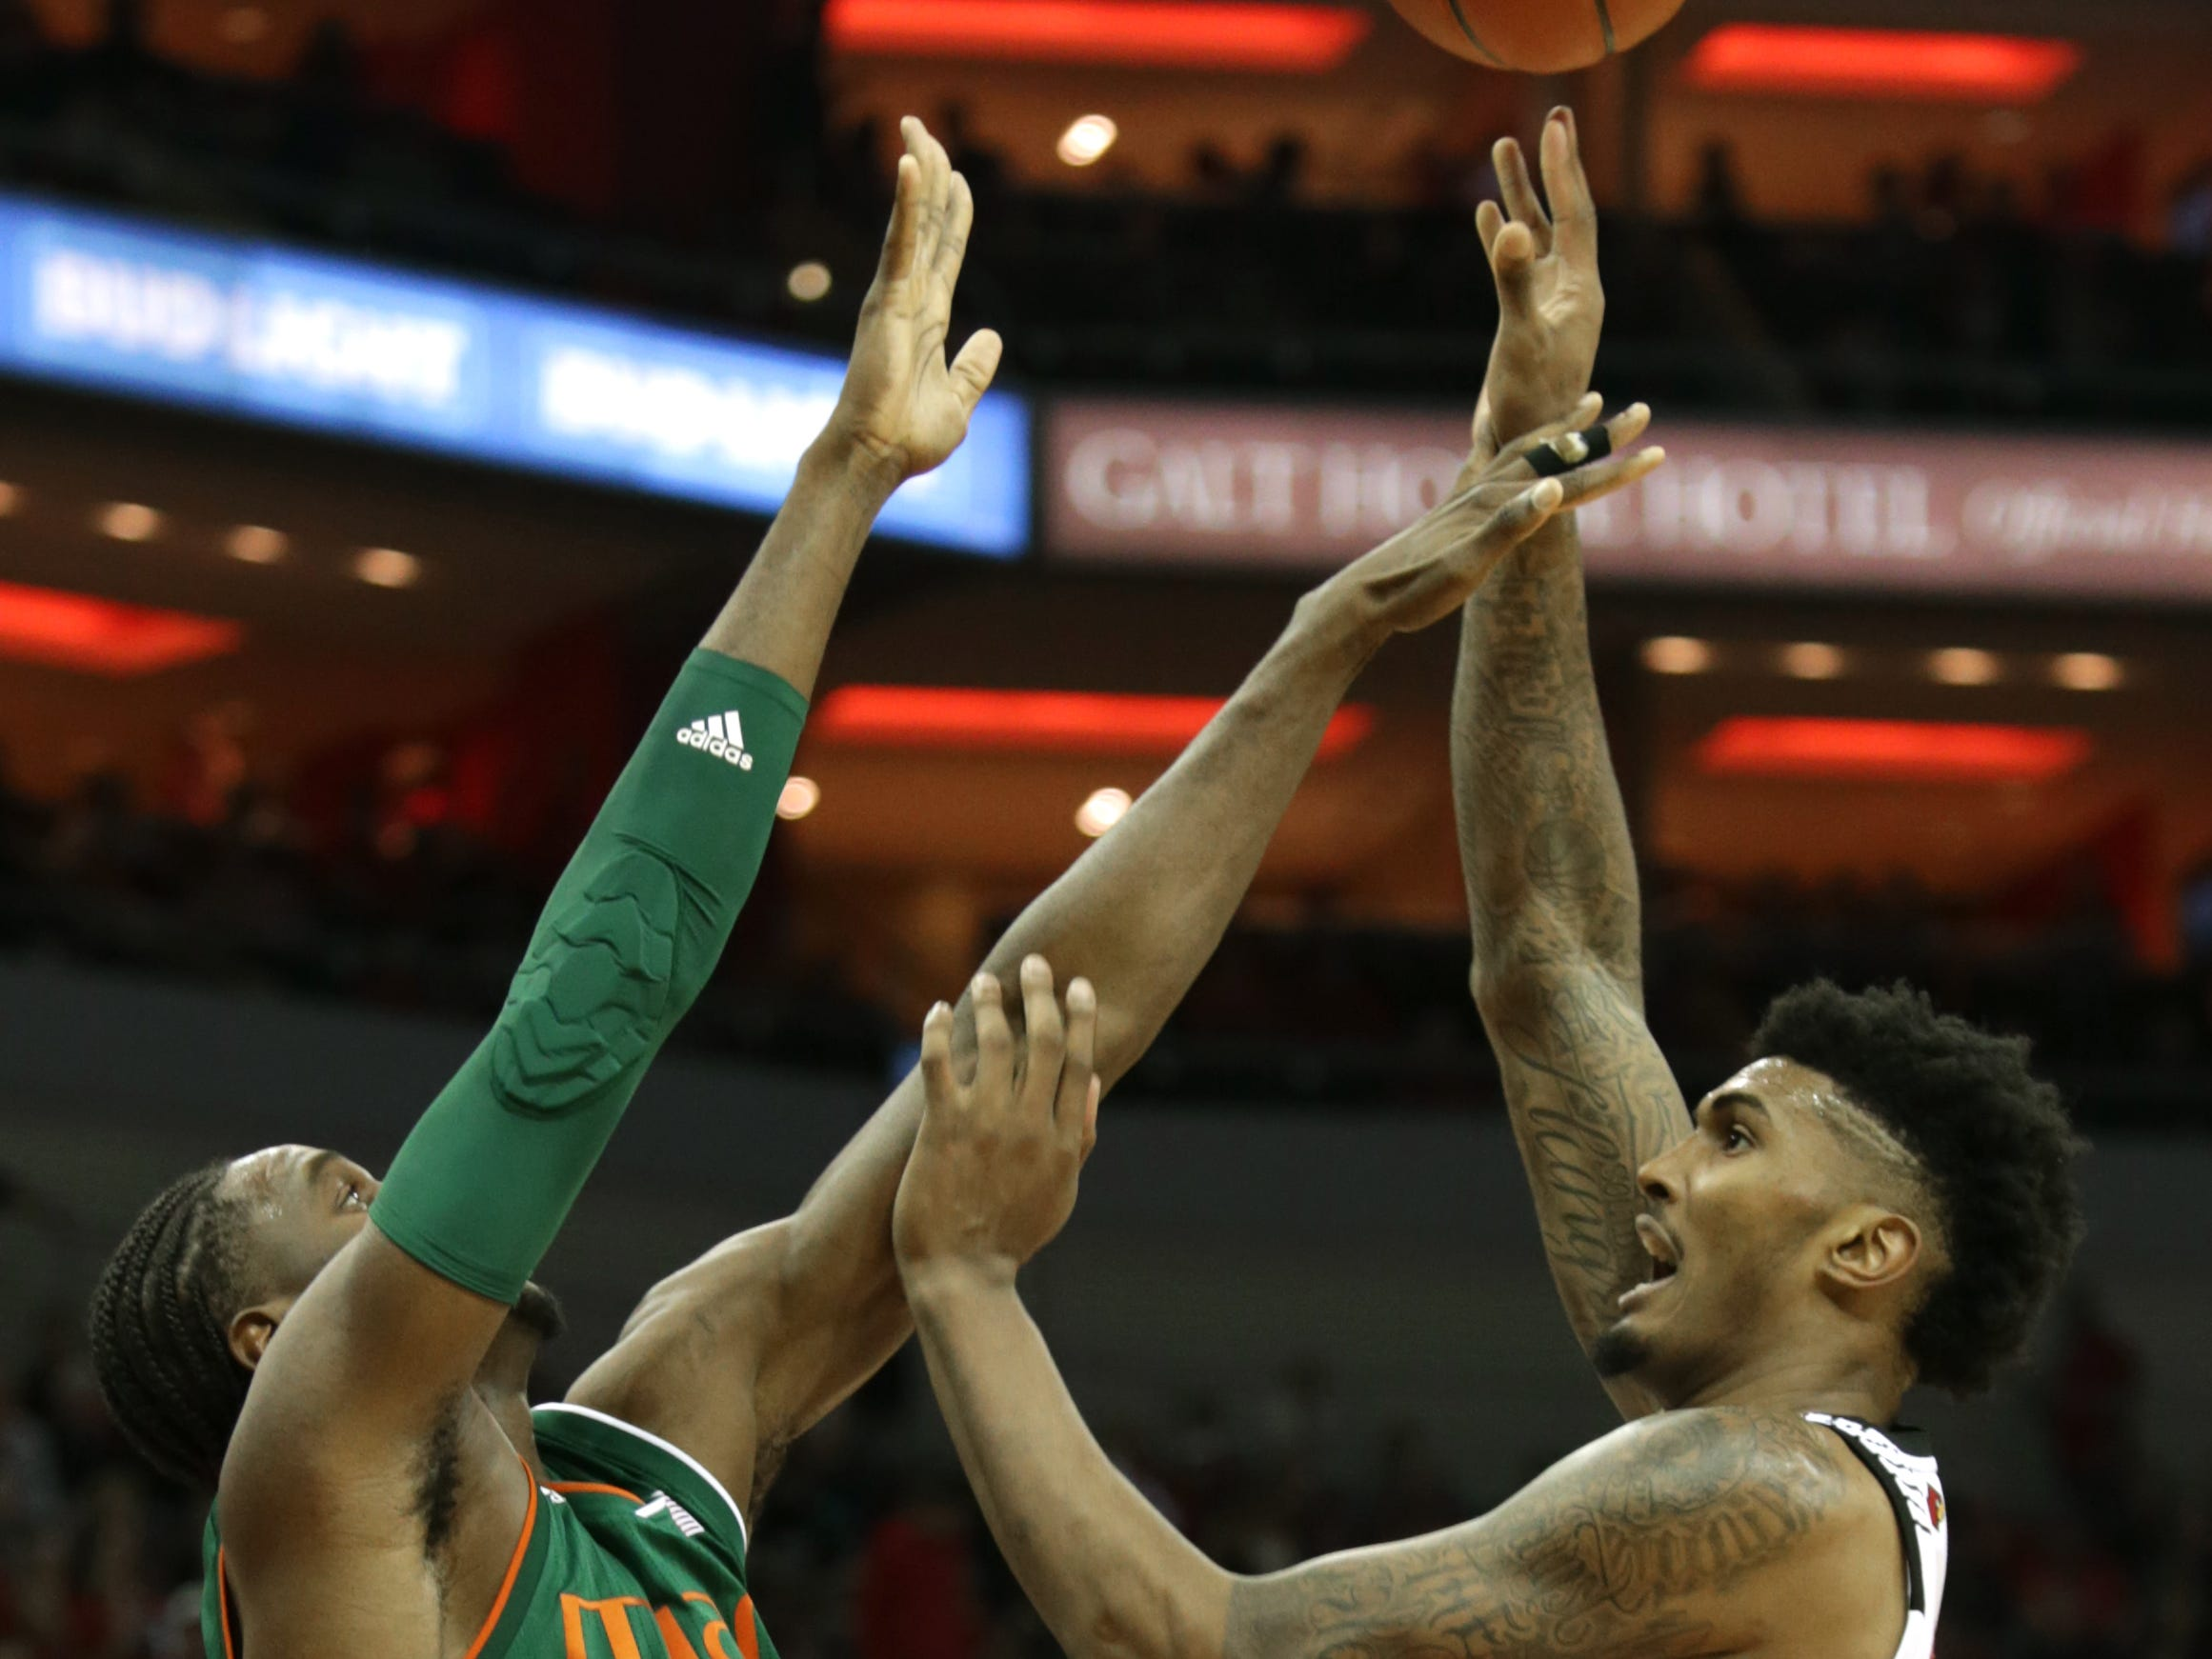 Louisville's Malik Williams gets a shot off against Miami's Eduka Izaundu. Williams scored 19 points in the game. Jan. 6, 2019.